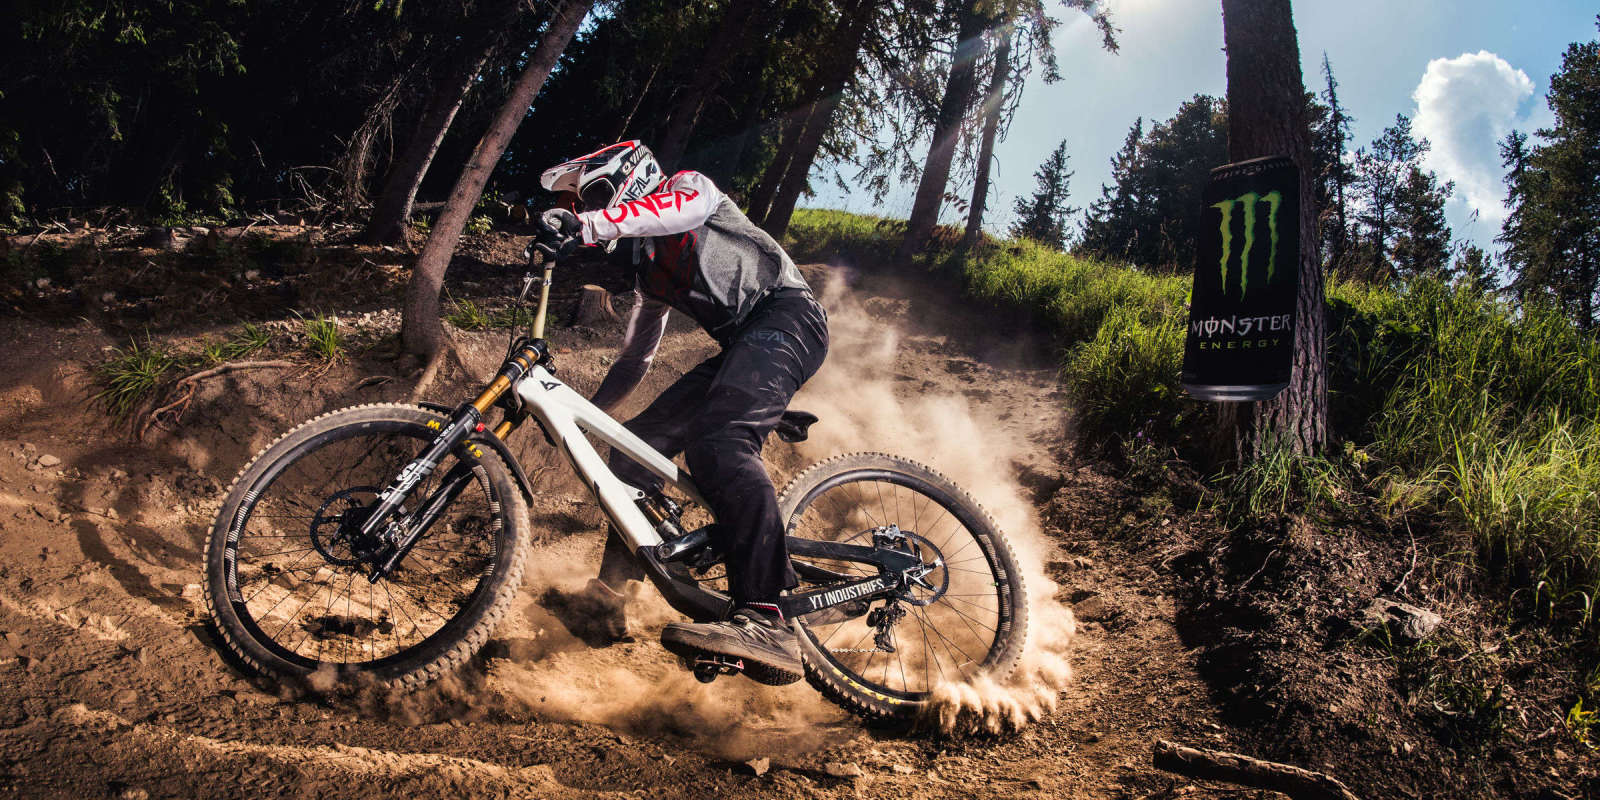 Photos of Stivian Gatev riding the Borovets downhill track, before the race. Credits: Actiongraphers.